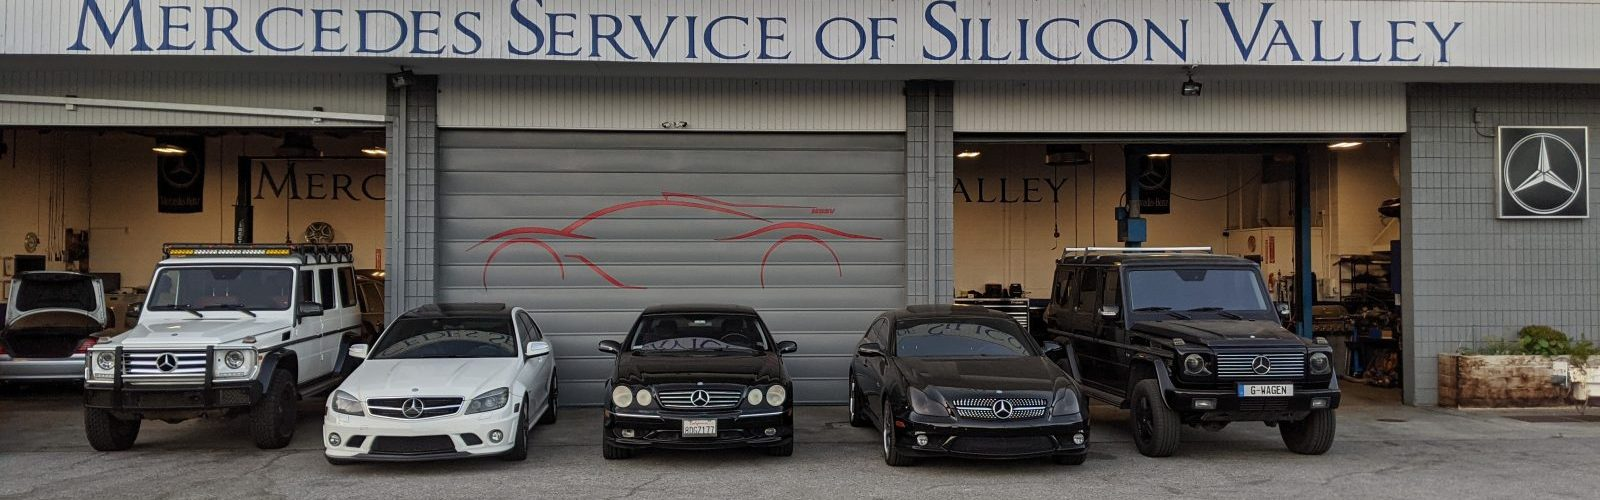 Mercedes Service of Silicon Valley